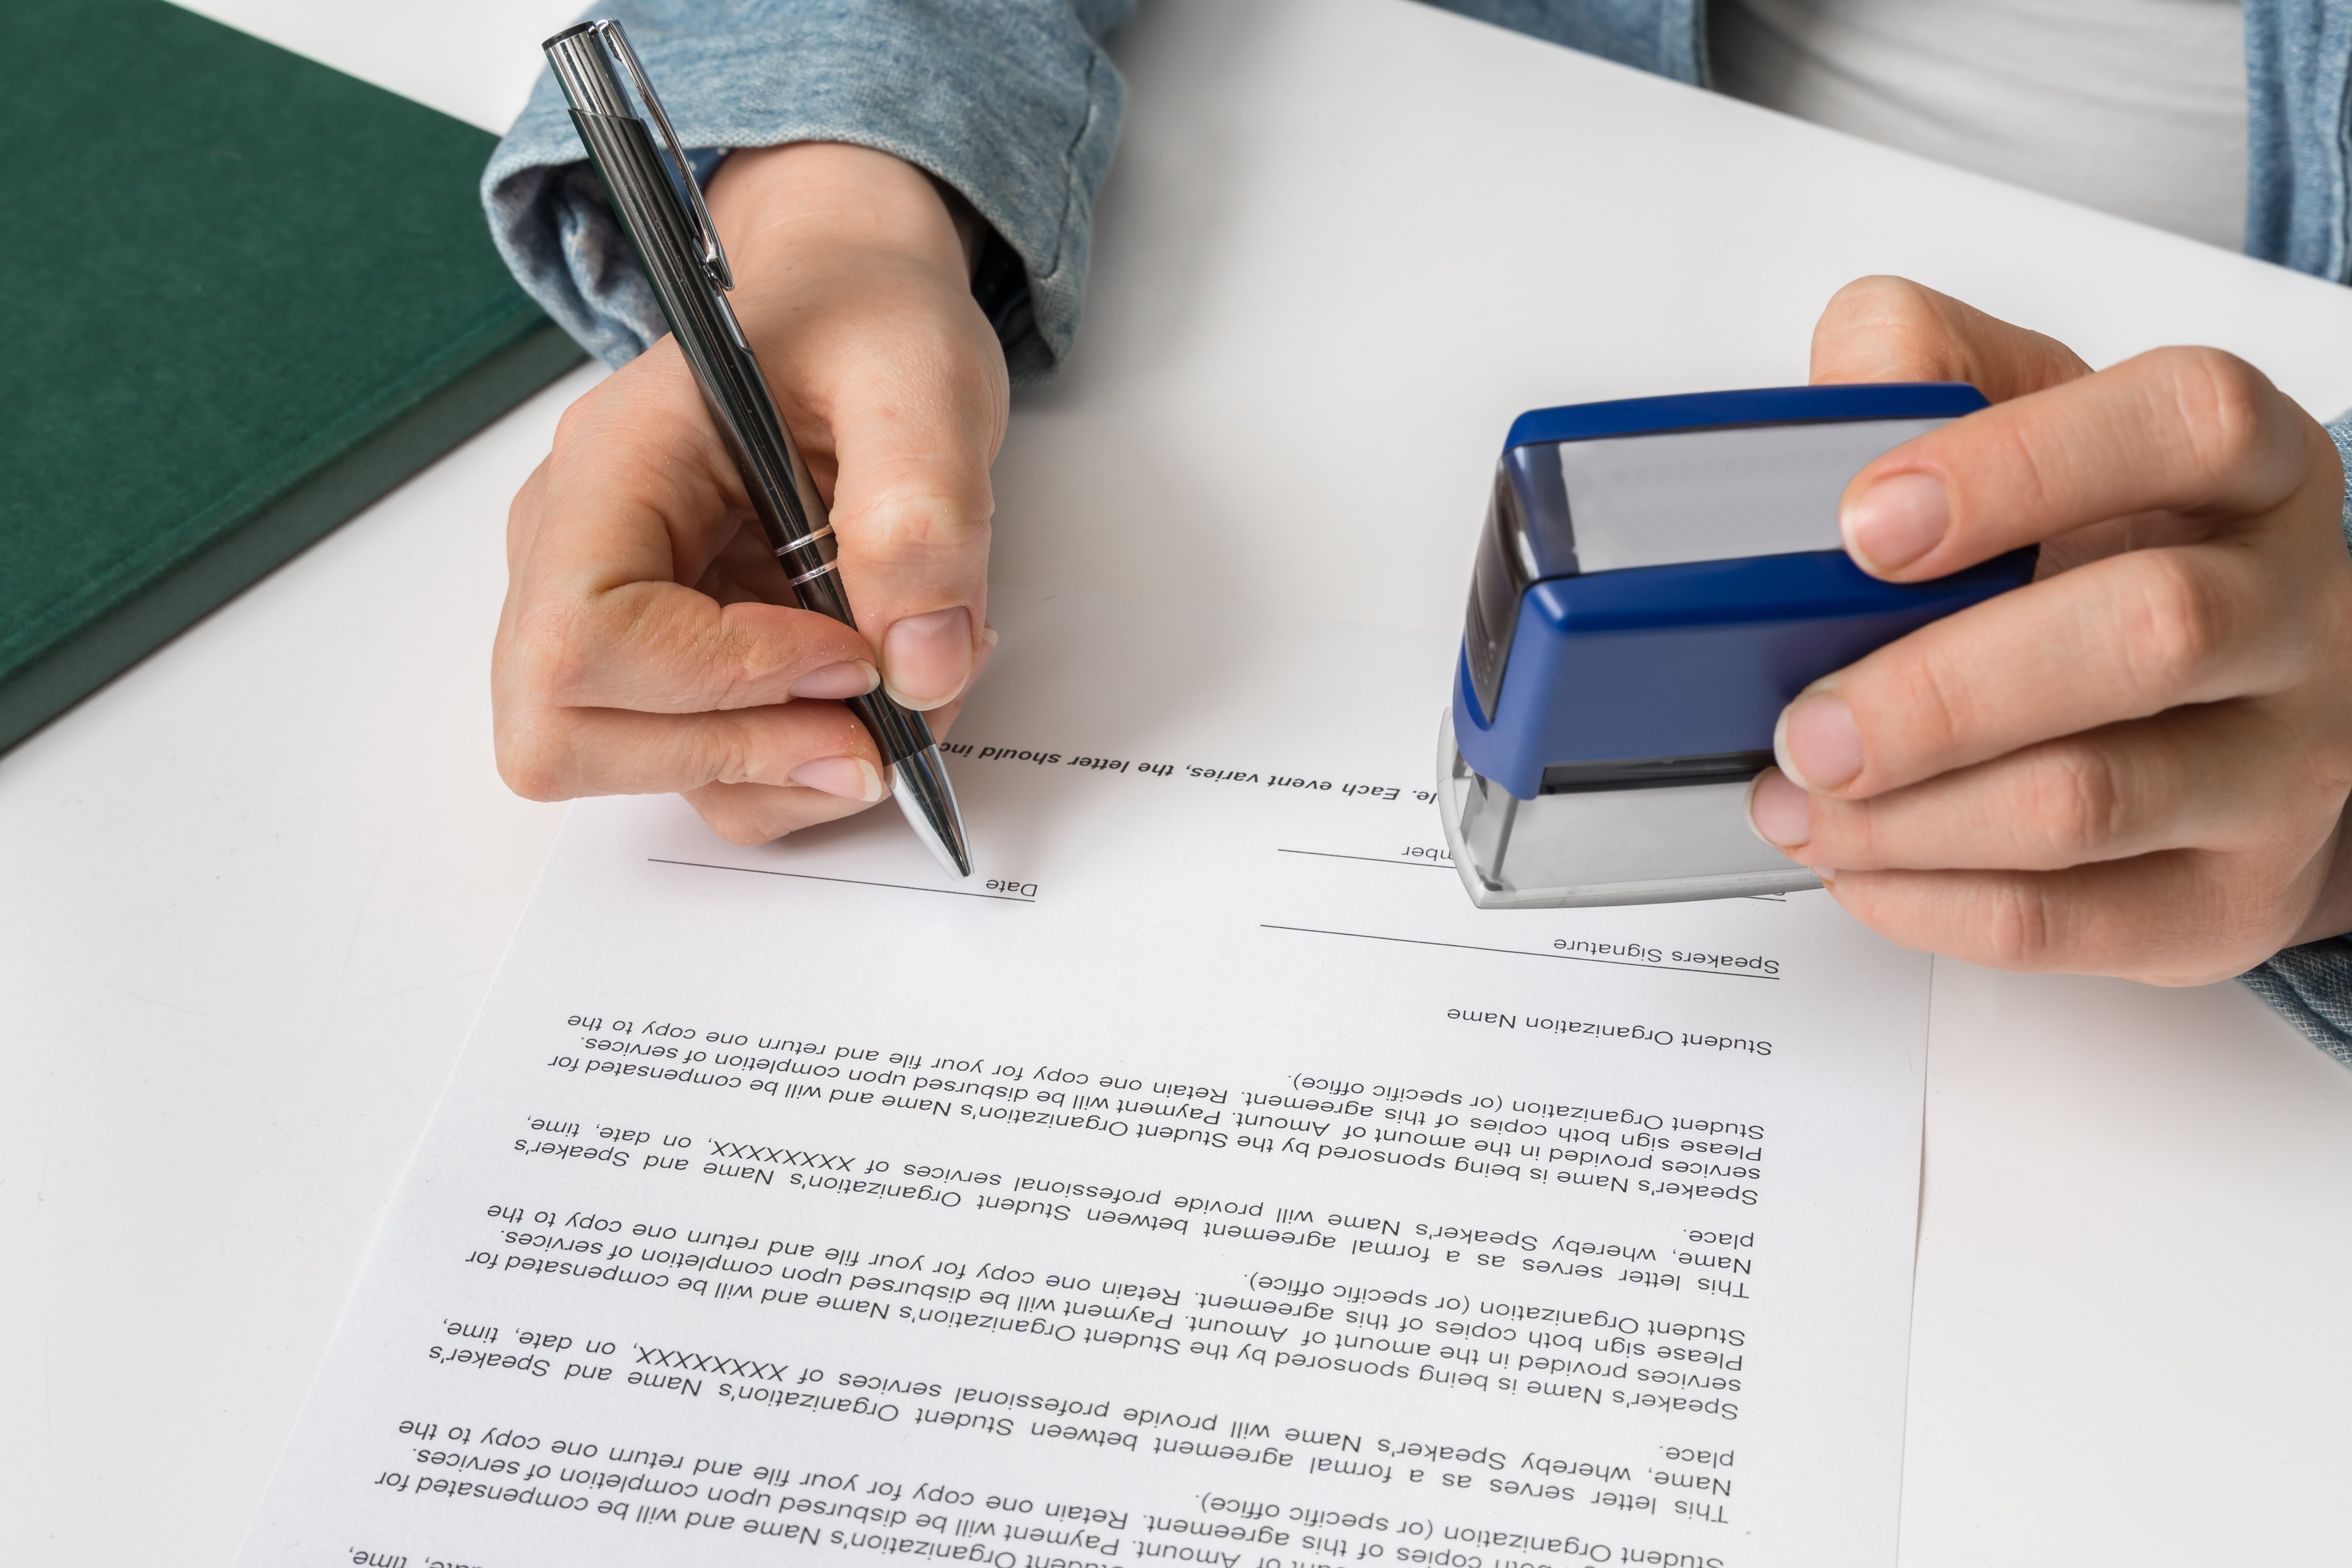 a hand holding a pen signing a document